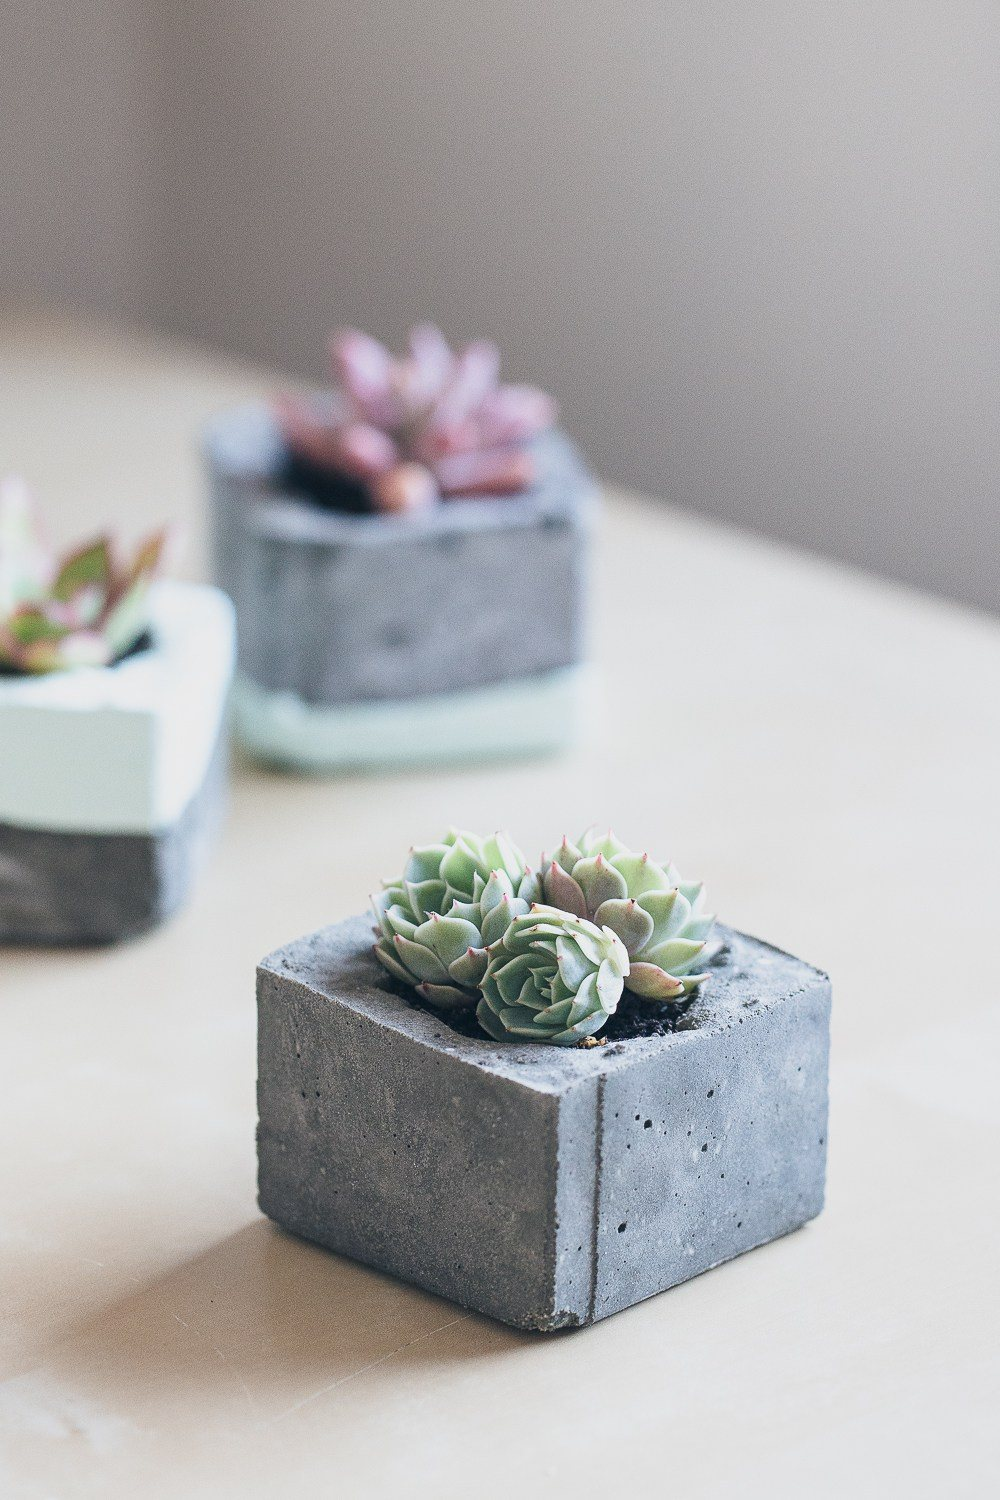 Design Succulent Planter Ideas 29 diy succulent planter ideas creative ways to display concrete planters